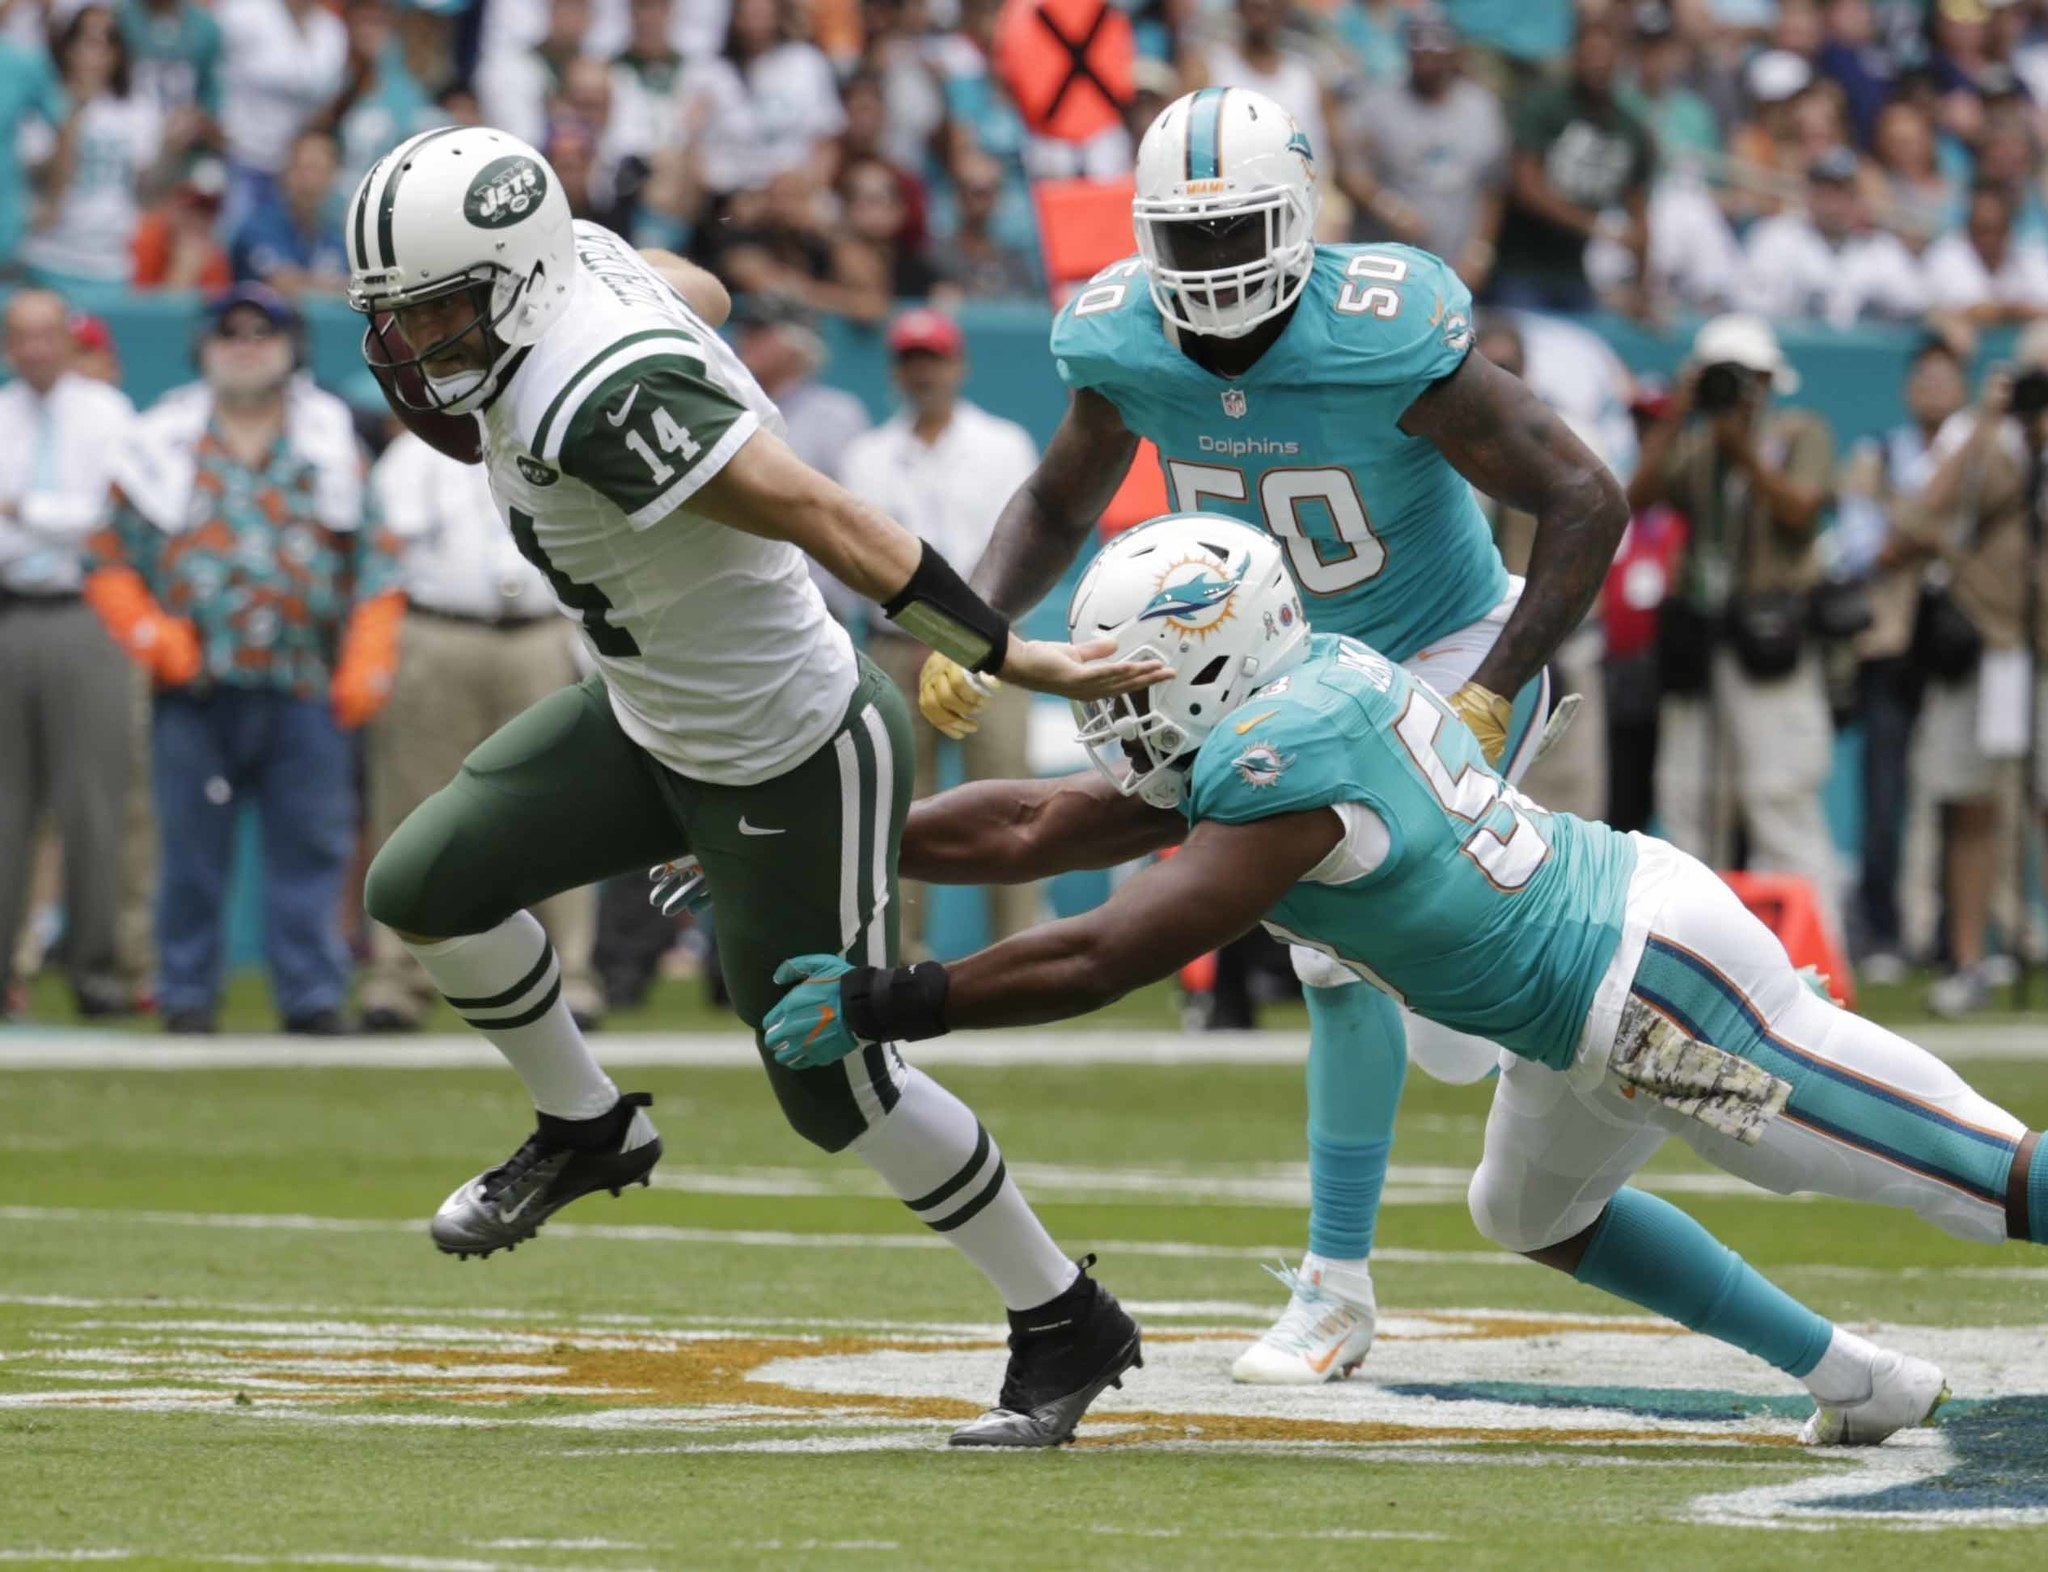 Fl-dolphins-1112-20161111